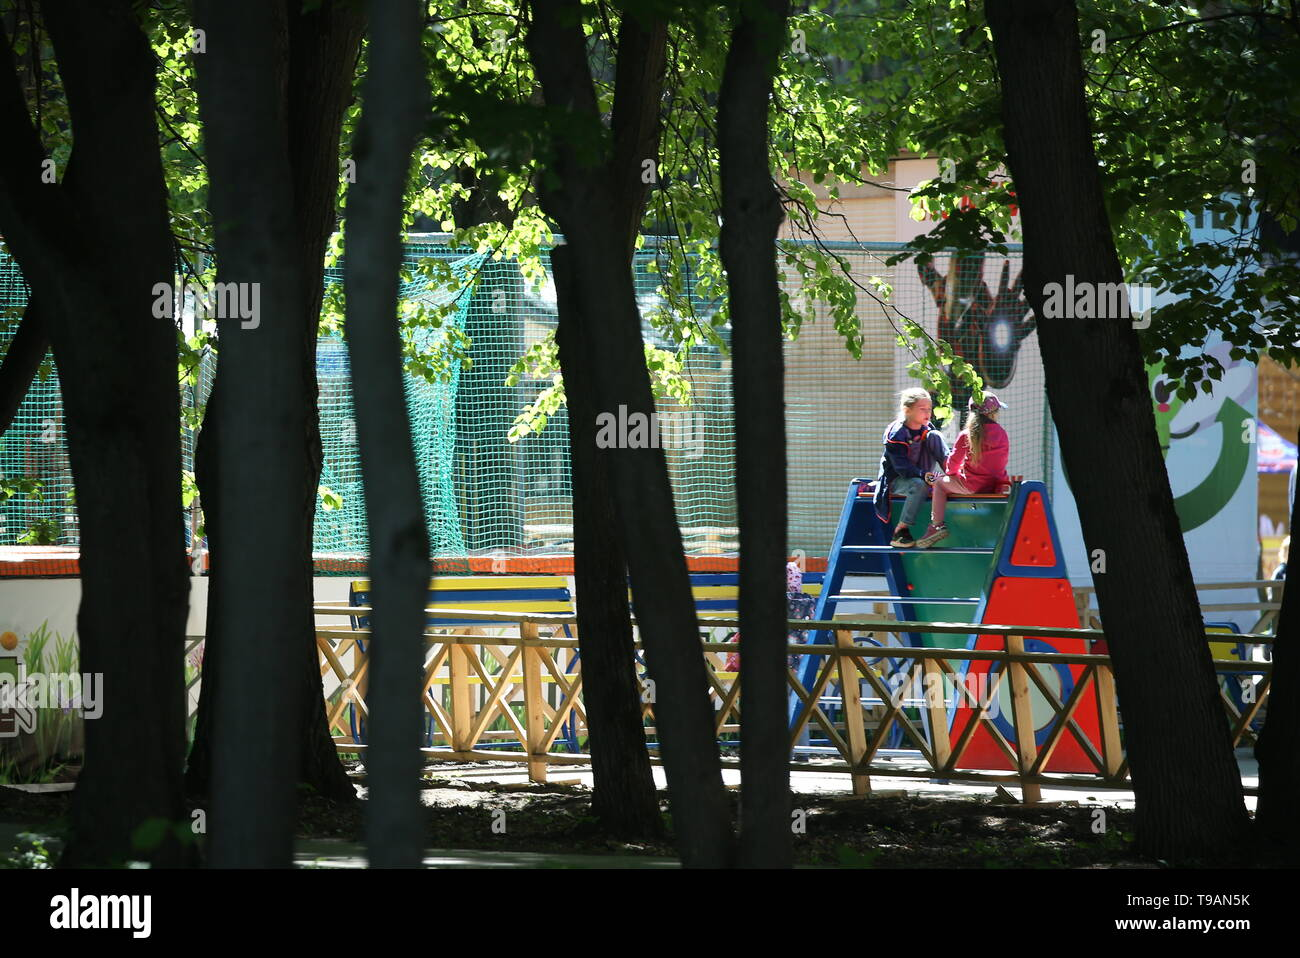 Ryazan, Russia. 17th May, 2019. RYAZAN, RUSSIA - MAY 17, 2019: A children's playground in Ryazan's Lesopark. On May 16, 2019, journalists complained to Russian President Vladimir Putin about the absence of a children's playground which had been largely funded by the city budget. Alexander Ryumin/TASS Credit: ITAR-TASS News Agency/Alamy Live News Stock Photo